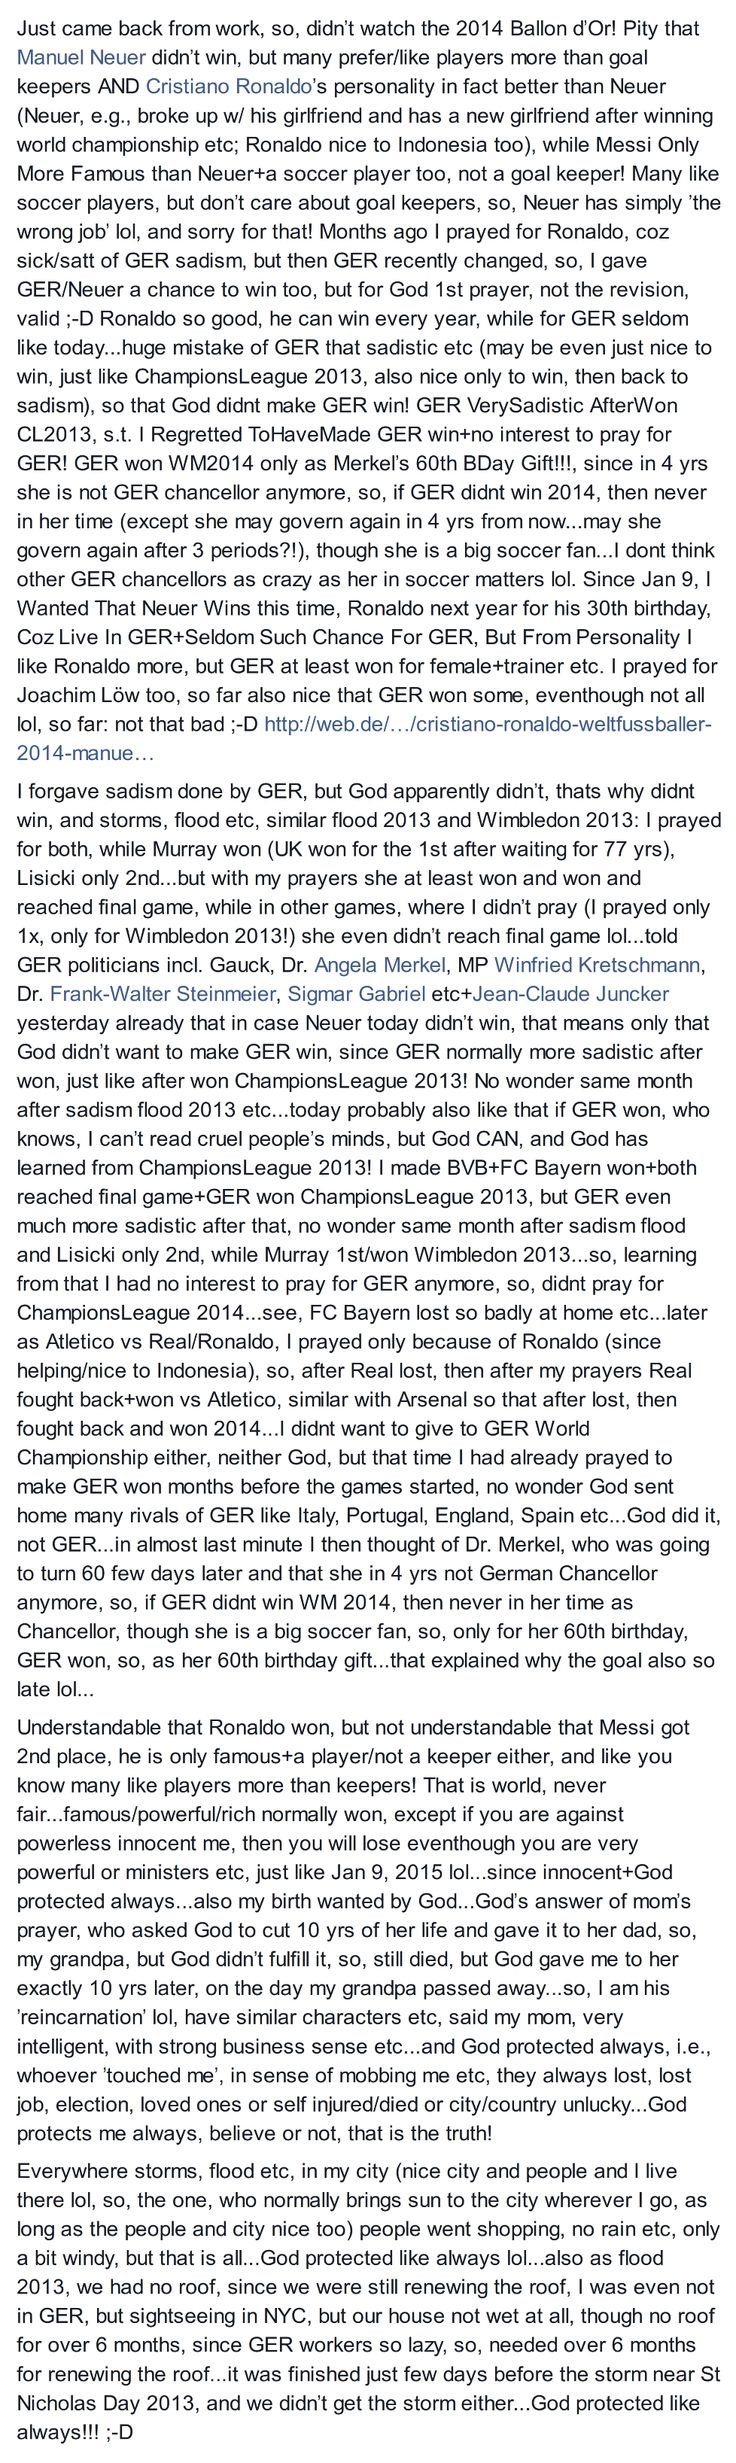 #Soccer,#ChampionsLeague 2013+2014,#Wimbledon 2013,#BallonDOr2014, #Ronaldo,#Neuer,#Messi,1st prayer,not the revision,got heard by #God lol! MonthsAgoPrayedFor #Ronaldo,coz sick of GER sadism,then GER changed,so,gave Neuer a chance,but for GOD:1st prayer,not the revision,valid;-D Ronaldo can win always,while for GER seldom like today;mistake of GER that sadistic etc(may be even just nice to win like CL 2013),s.t.God didnt make GER win!